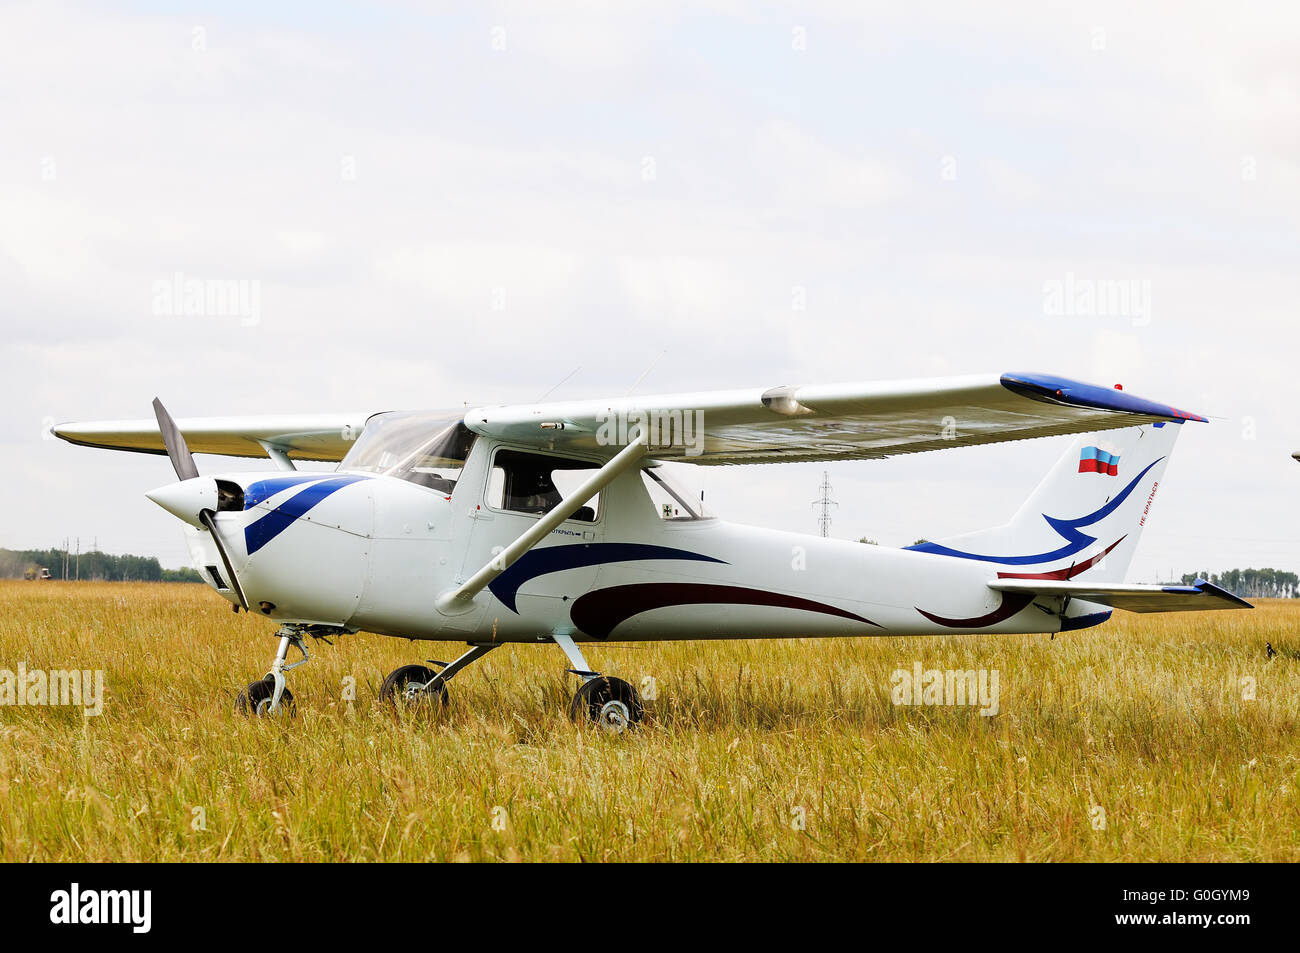 Private propeller-driven airplane landed in green field - Stock Image